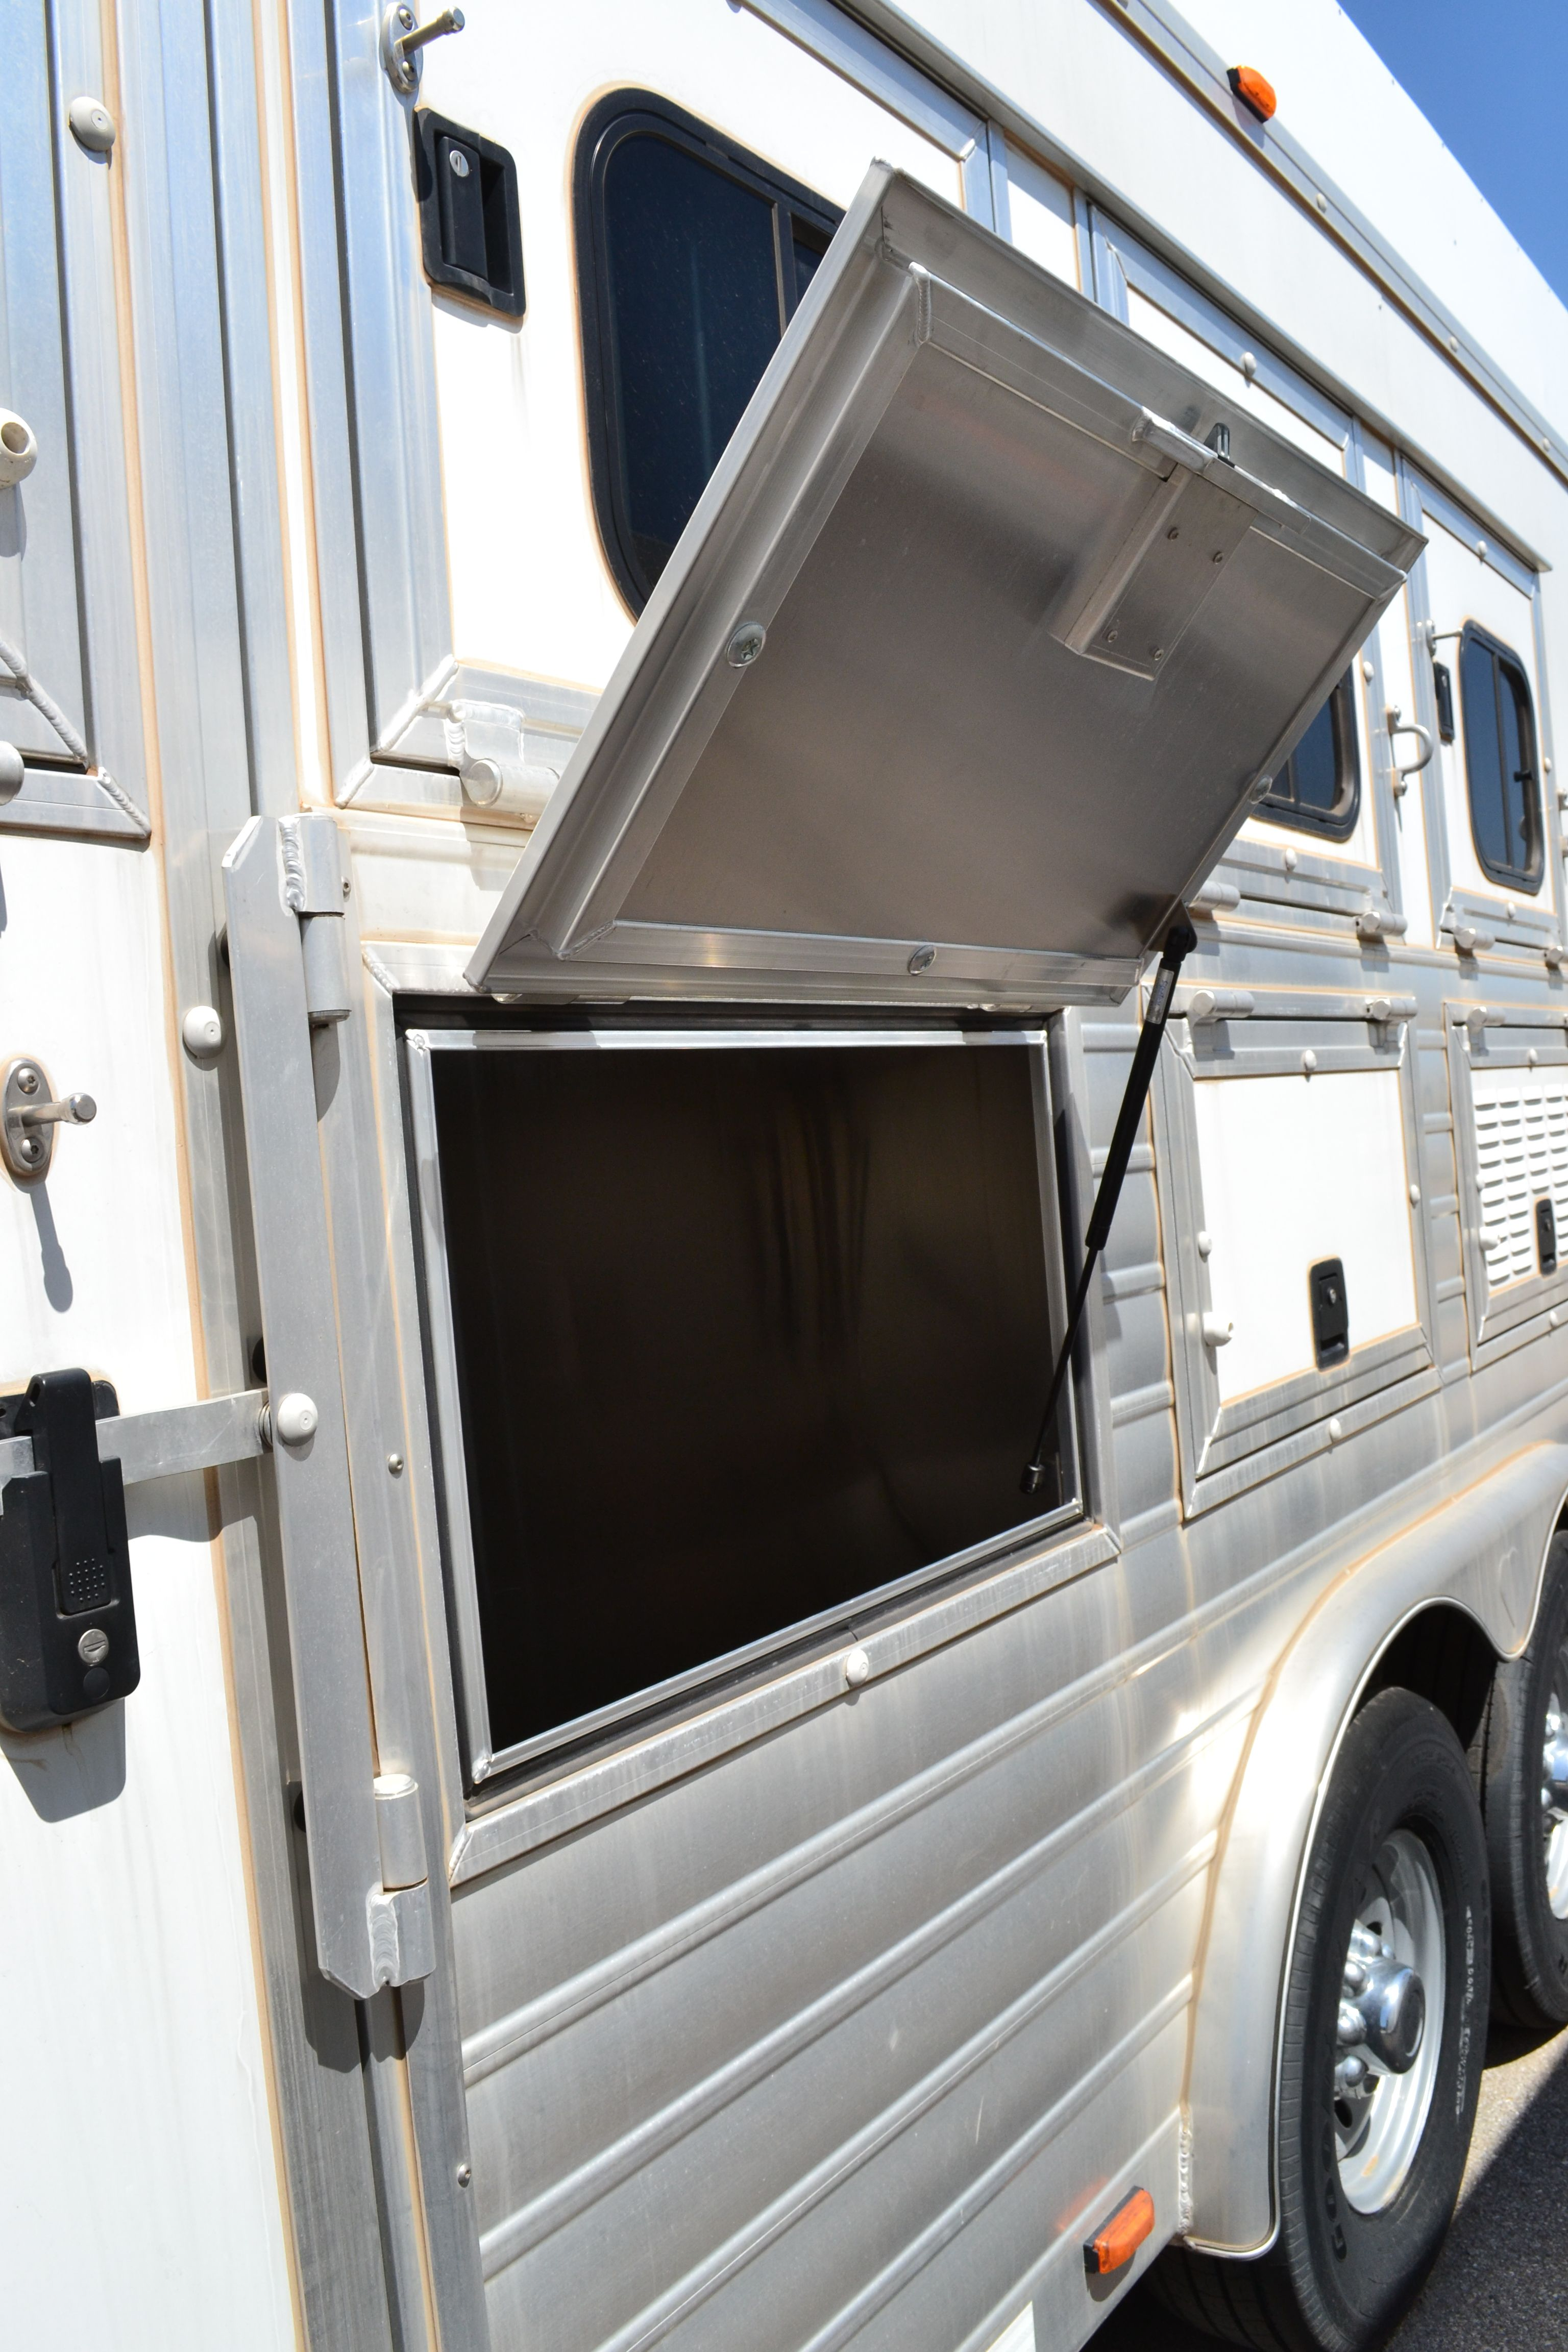 hart horse trailer mangers with access door hydraulic lift arms